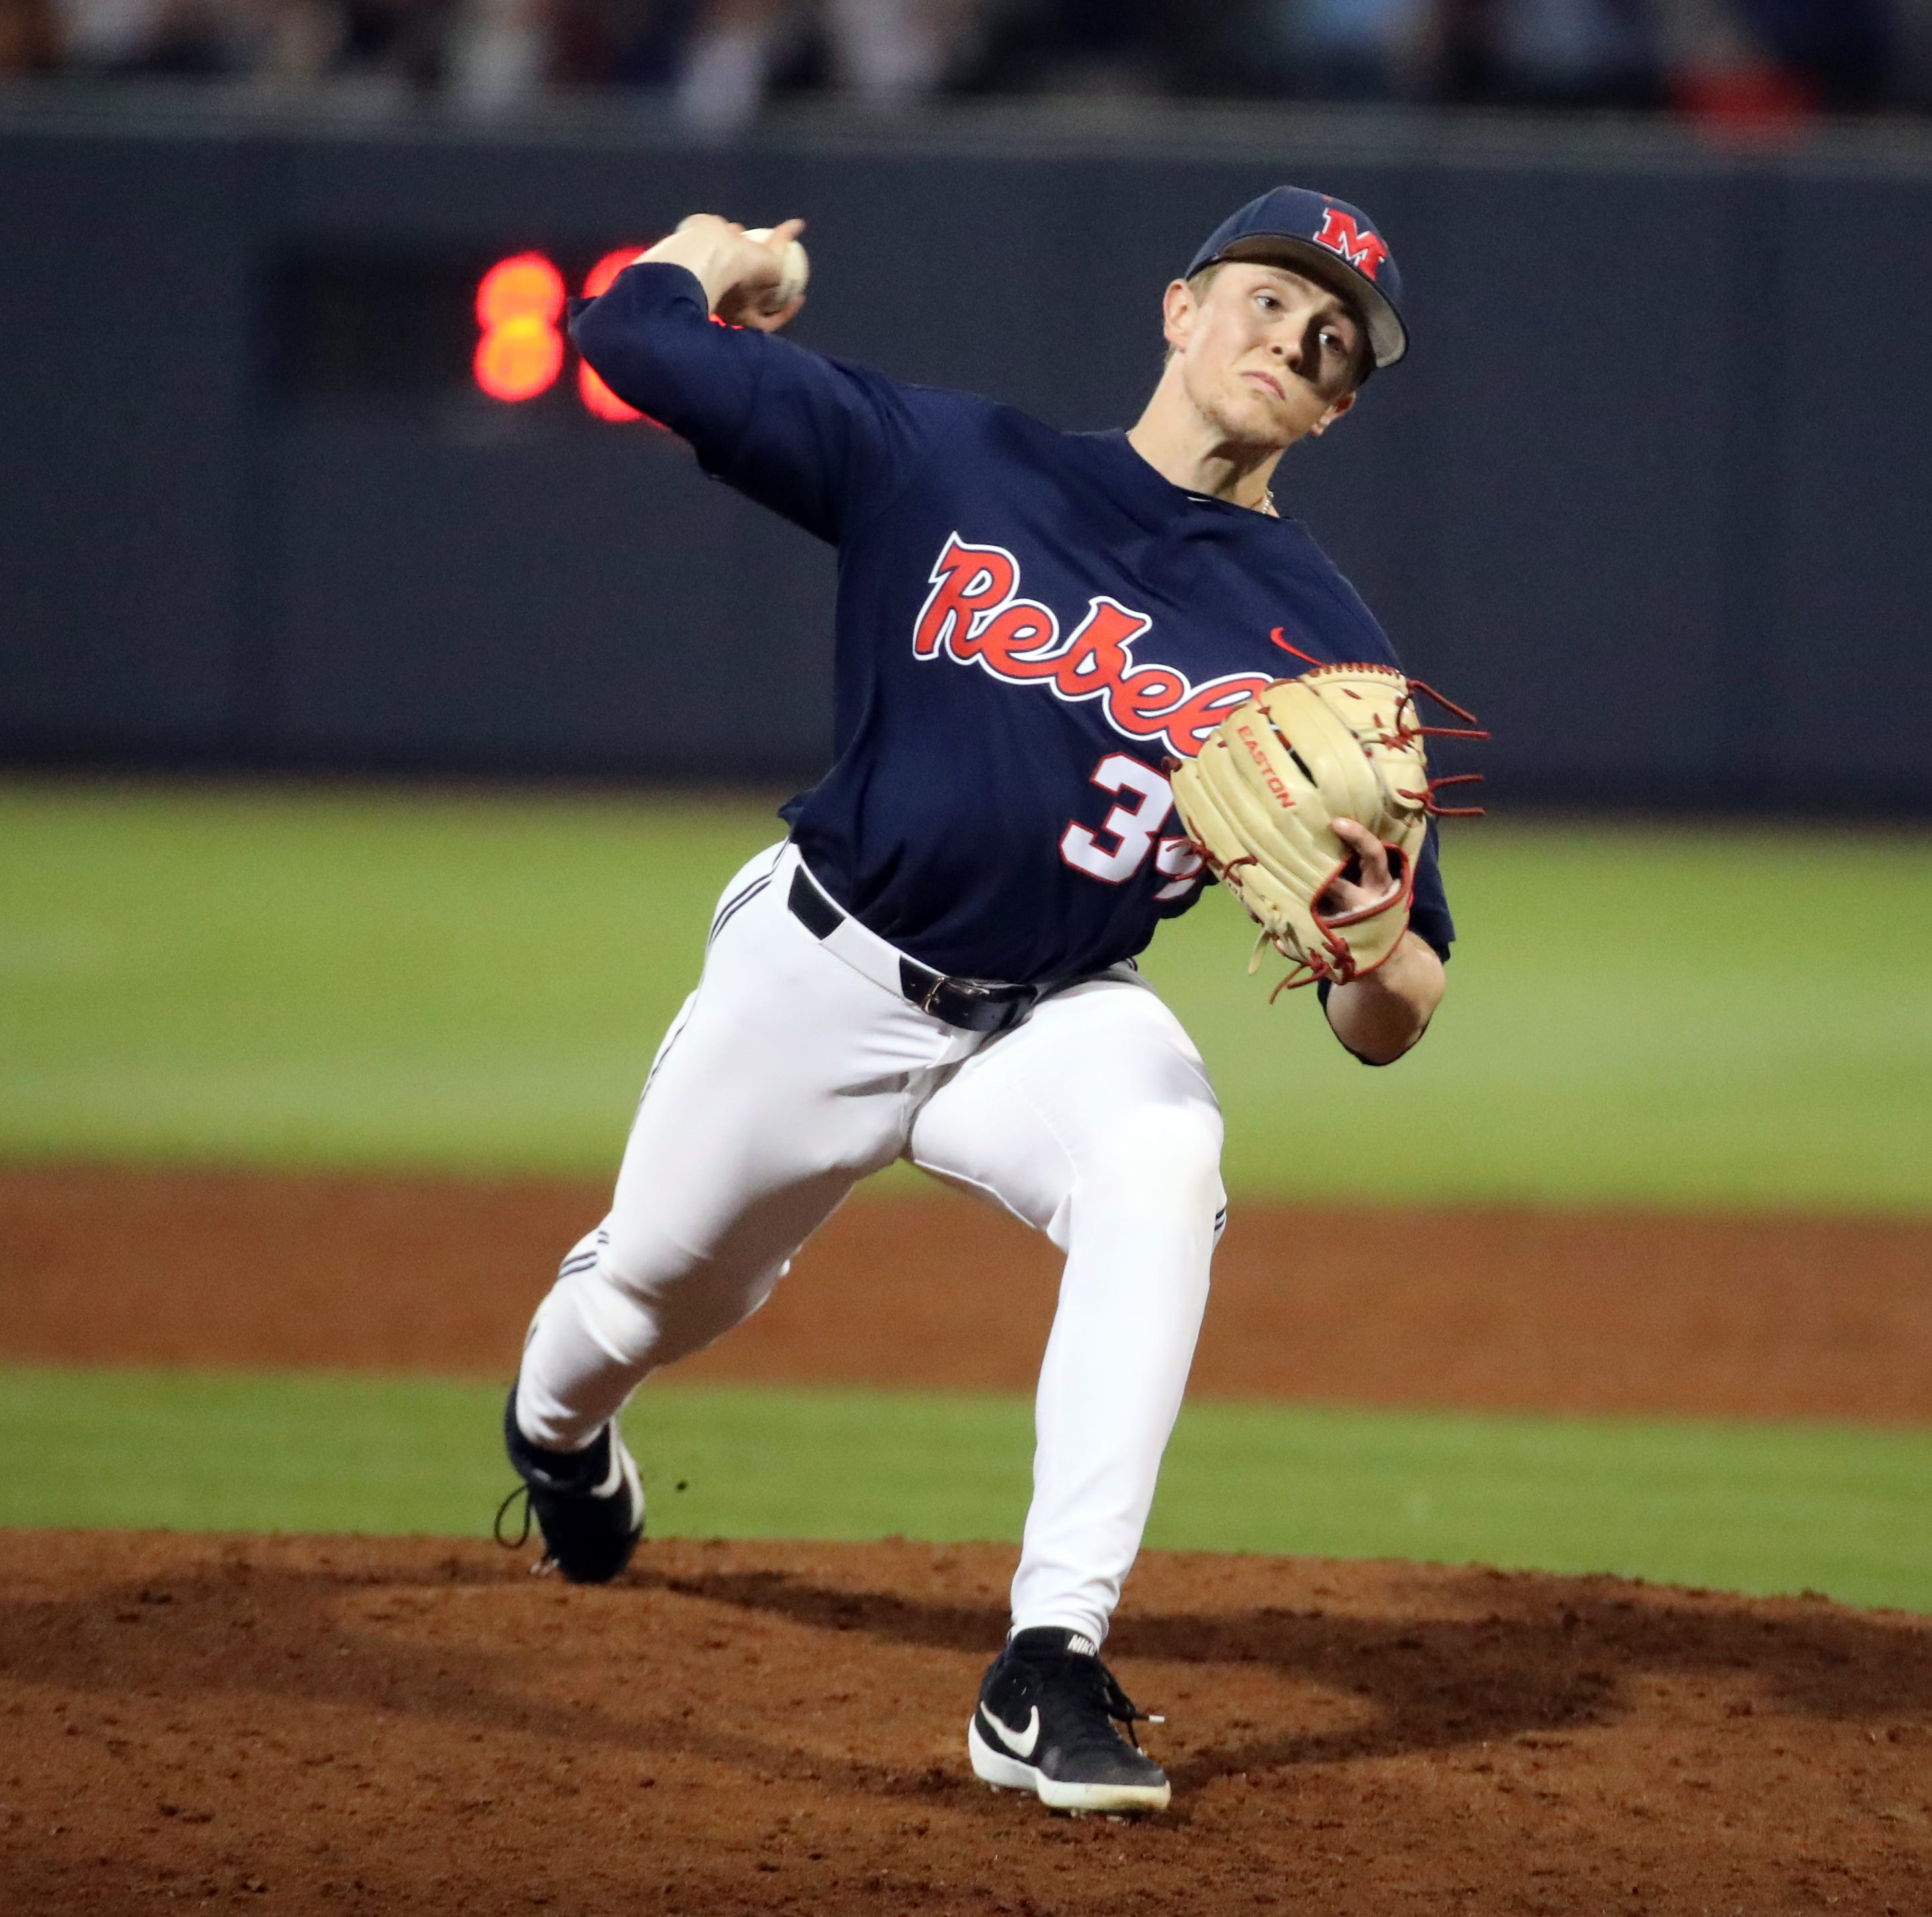 Ole Miss bats get hot, Tyler Myers impresses as Rebels take down No. 16 Florida 12-4